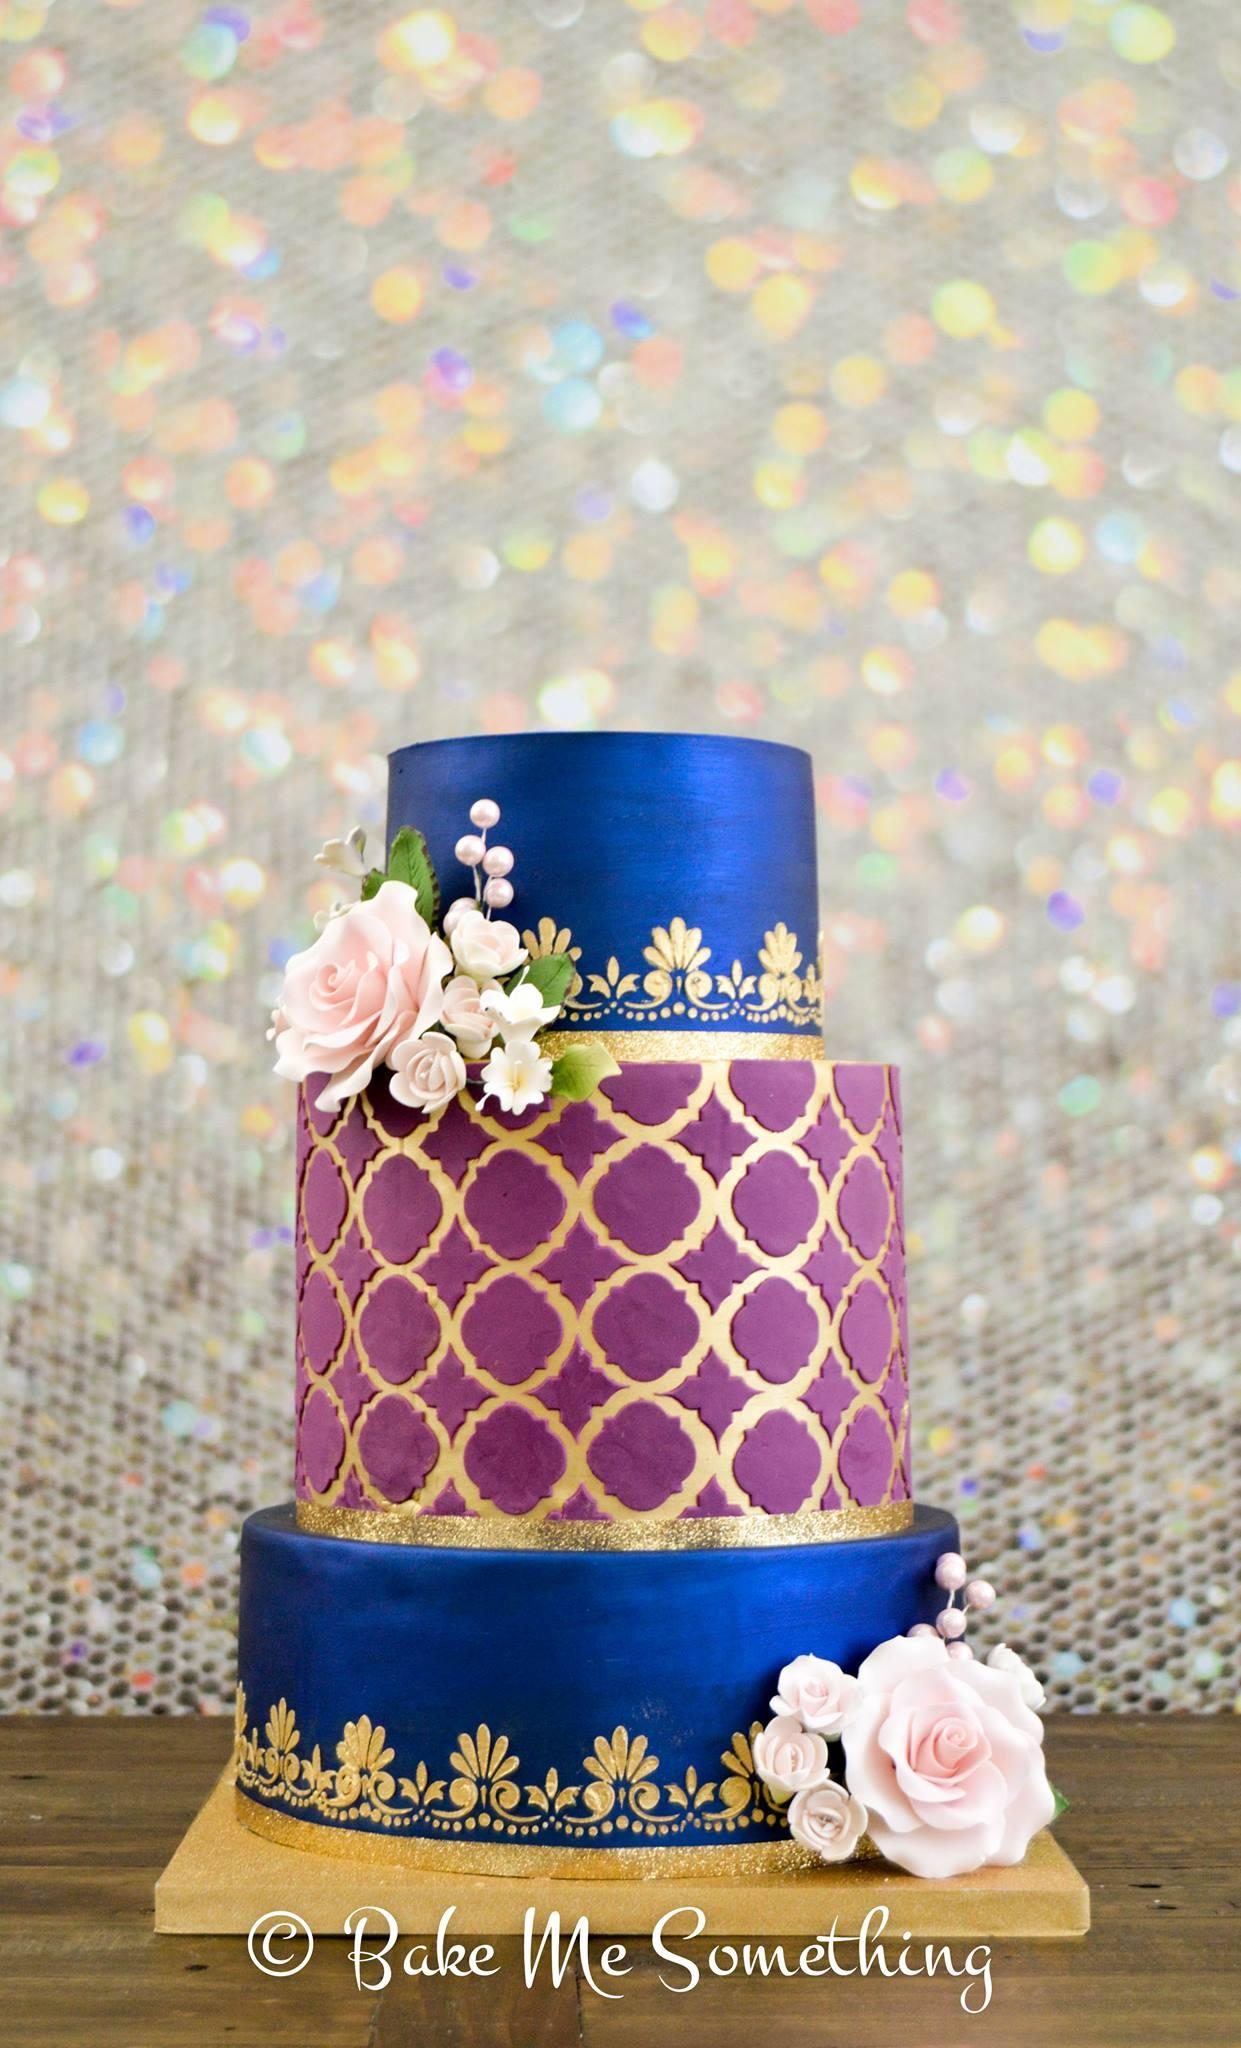 Burgundy and blue fondant wedding cake with gold accents